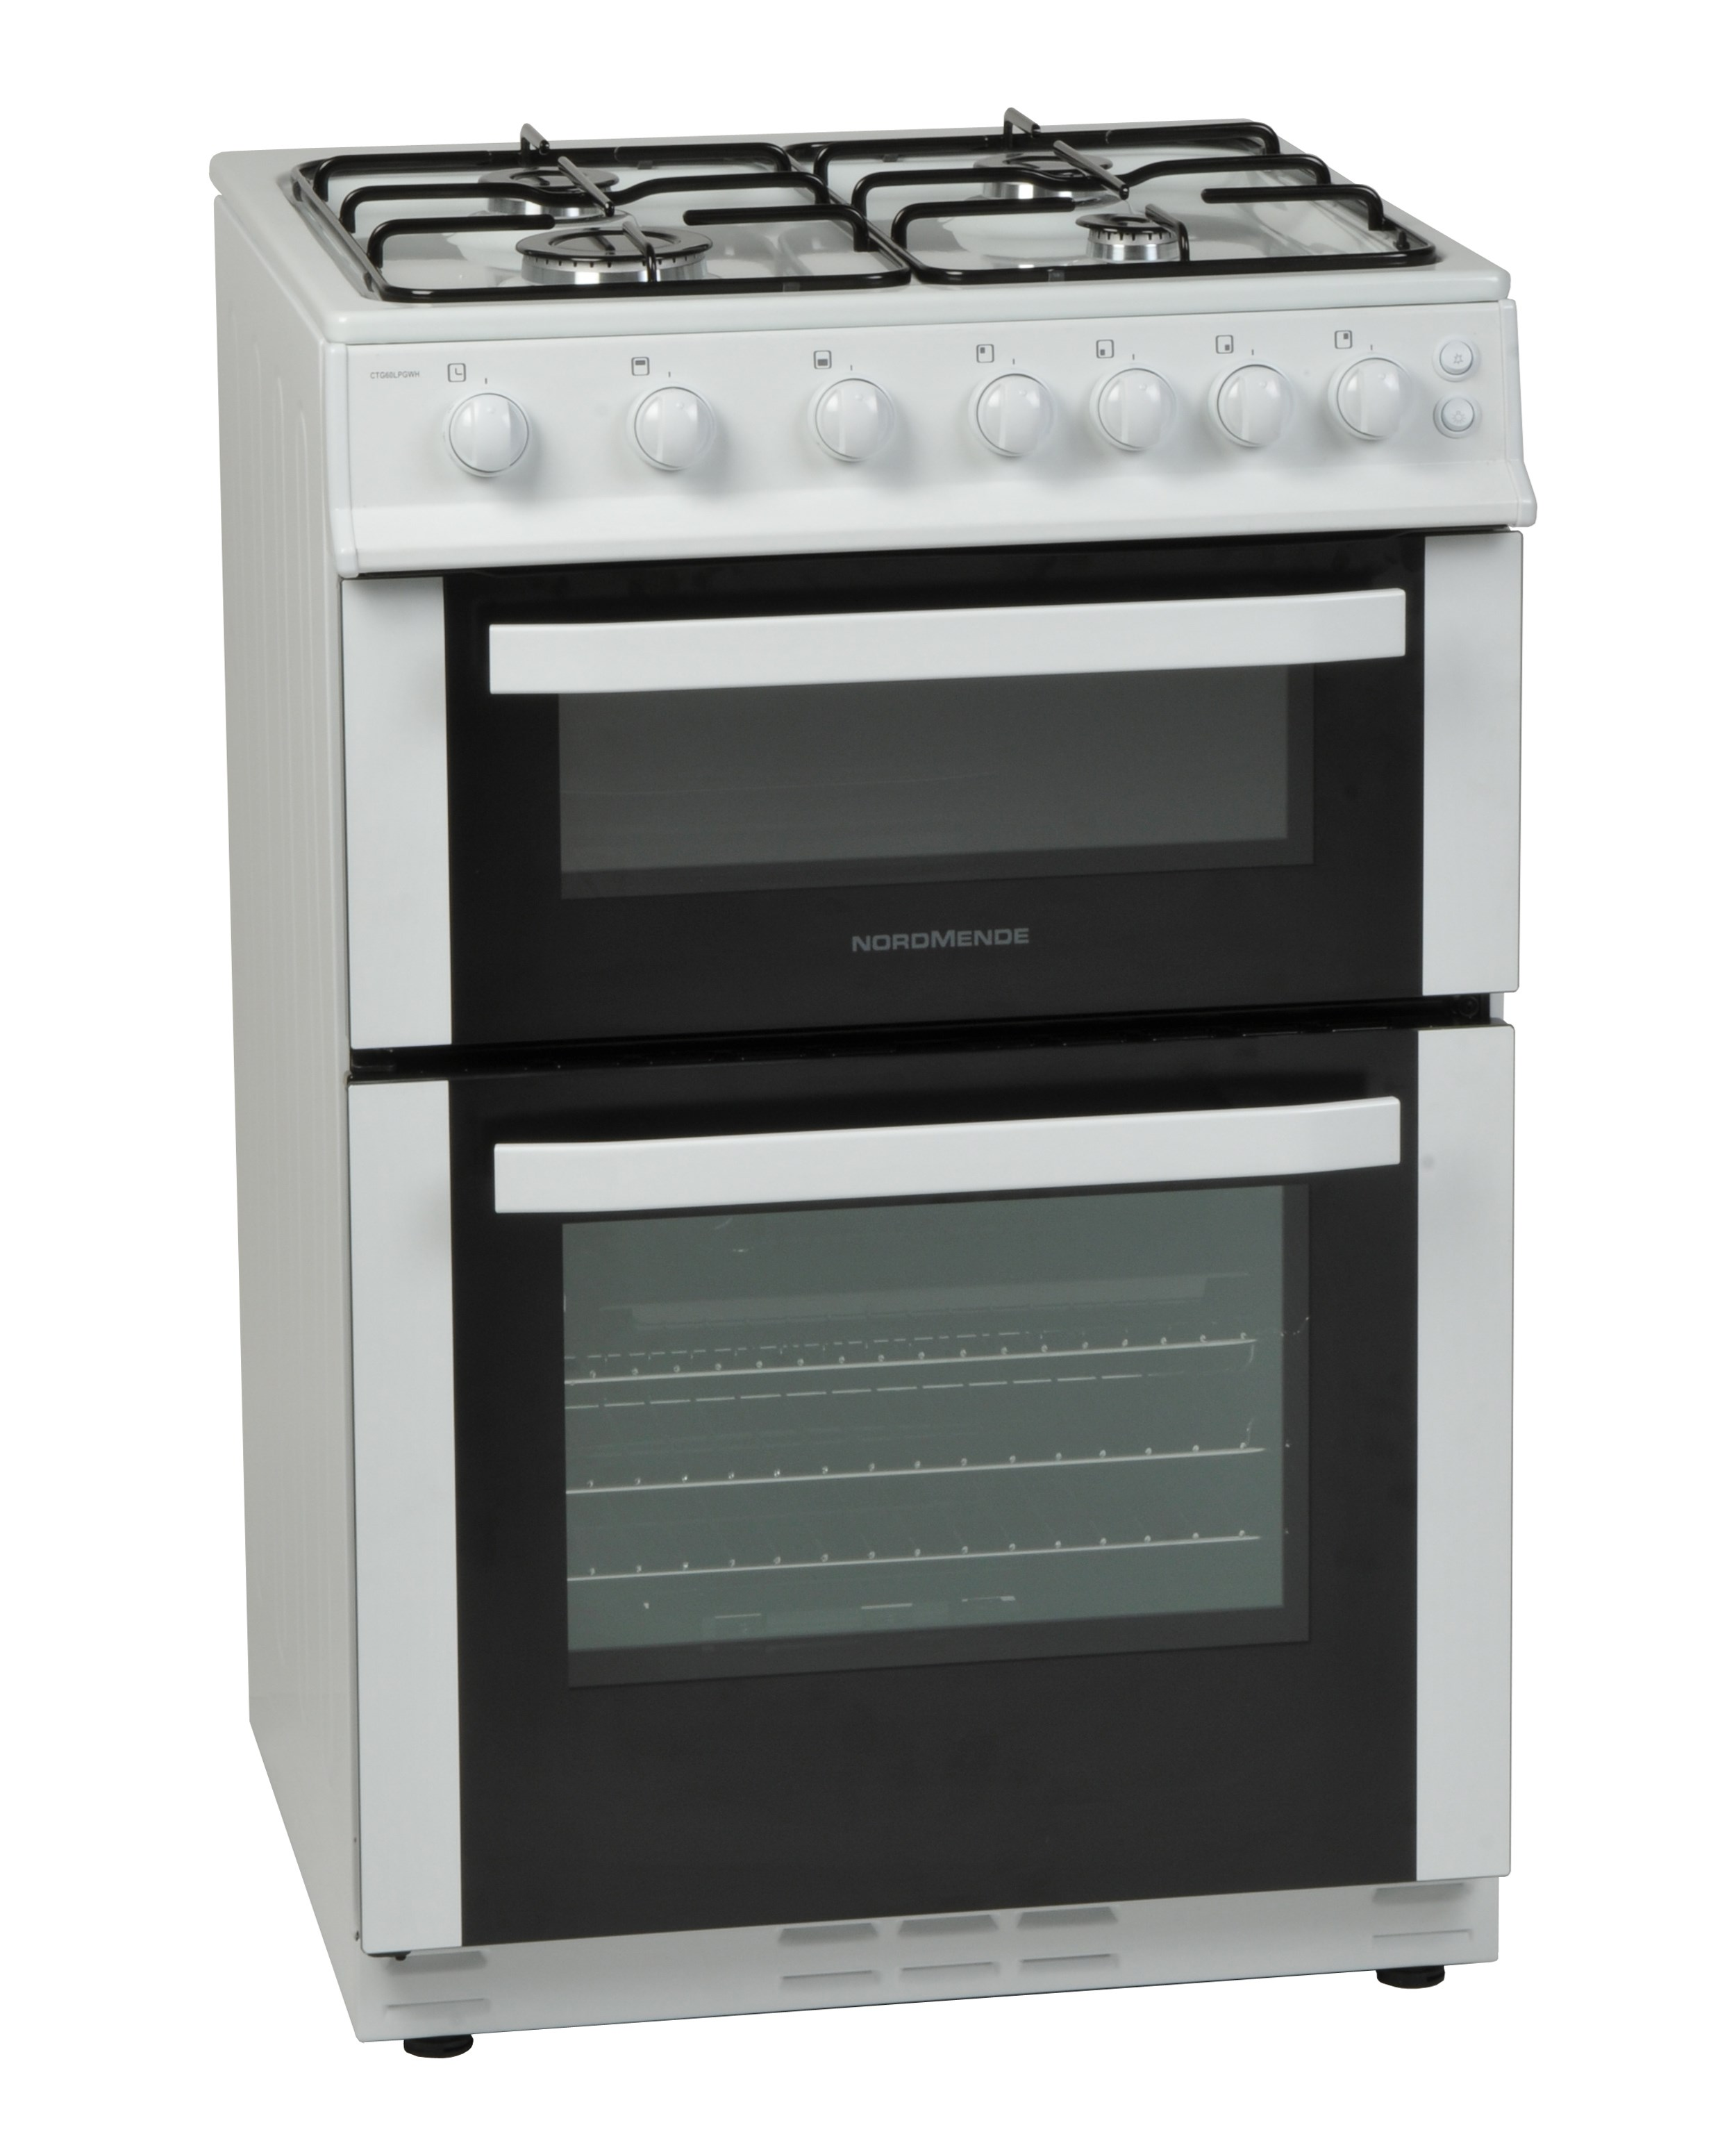 nordmende white freestanding gas cooker 60cm ctg60lpgwh. Black Bedroom Furniture Sets. Home Design Ideas